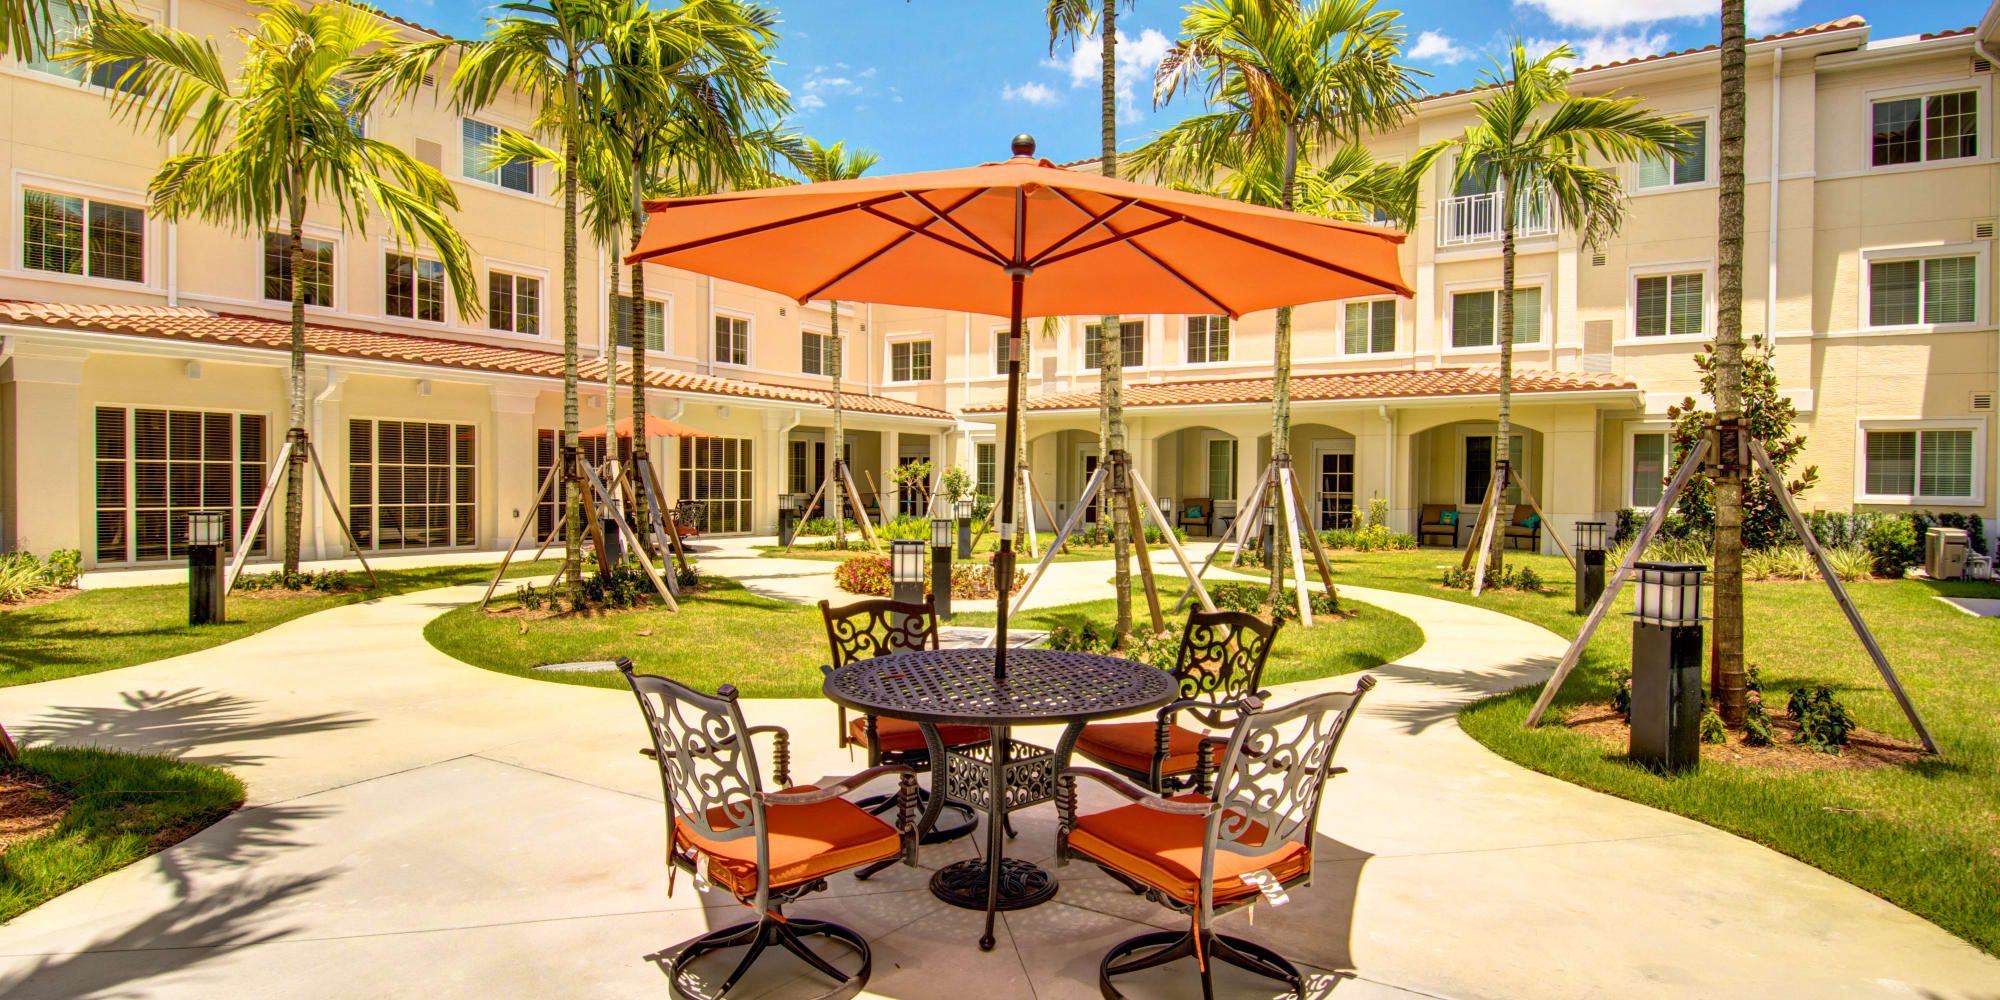 The Meridian at Boca Raton courtyard with tables and chairs